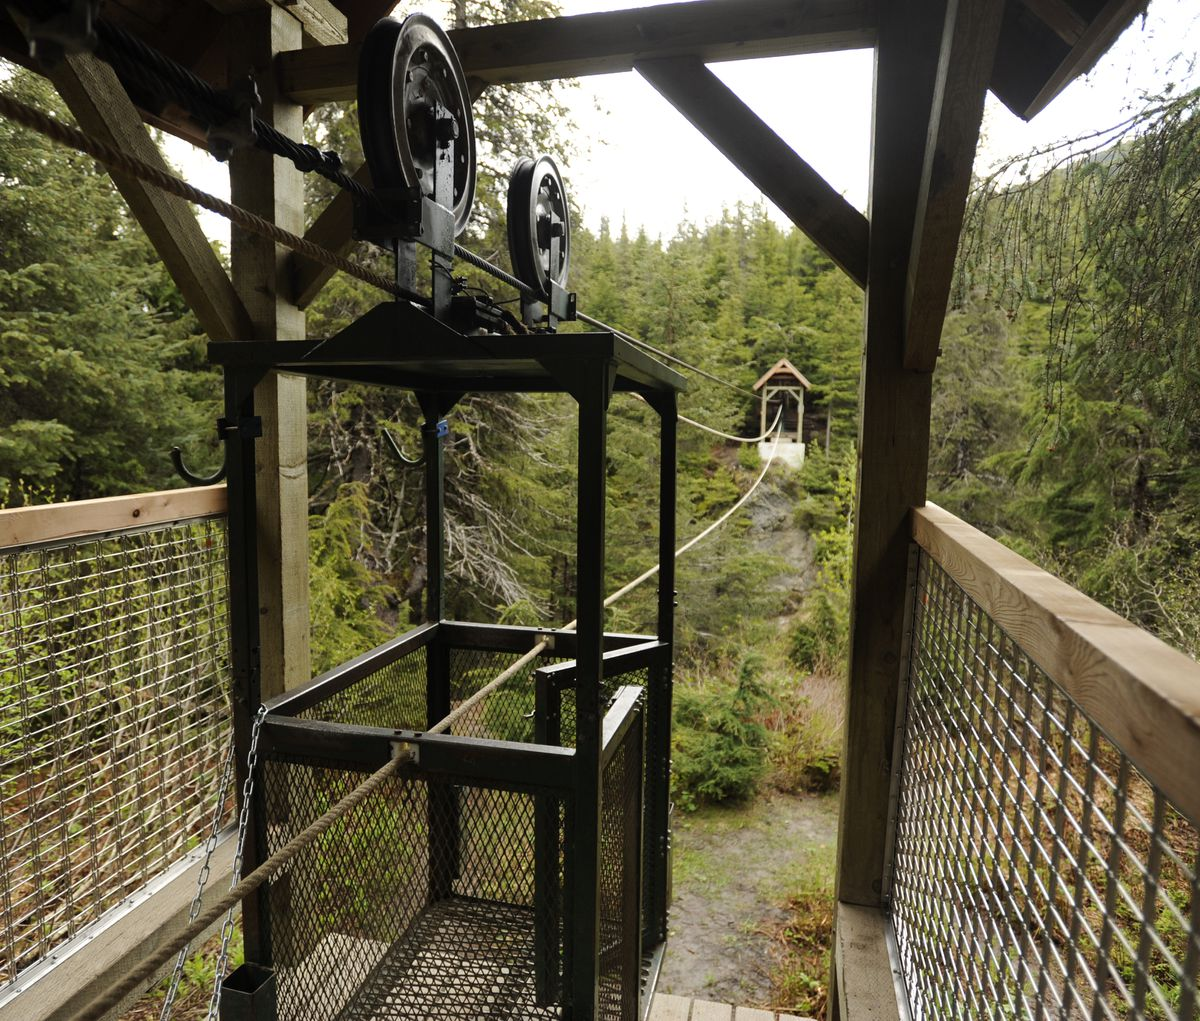 The hand tram that crosses Winner Creek near Girdwood underwent renovations in 2012 to add safety features. (Marc Lester / ADN)